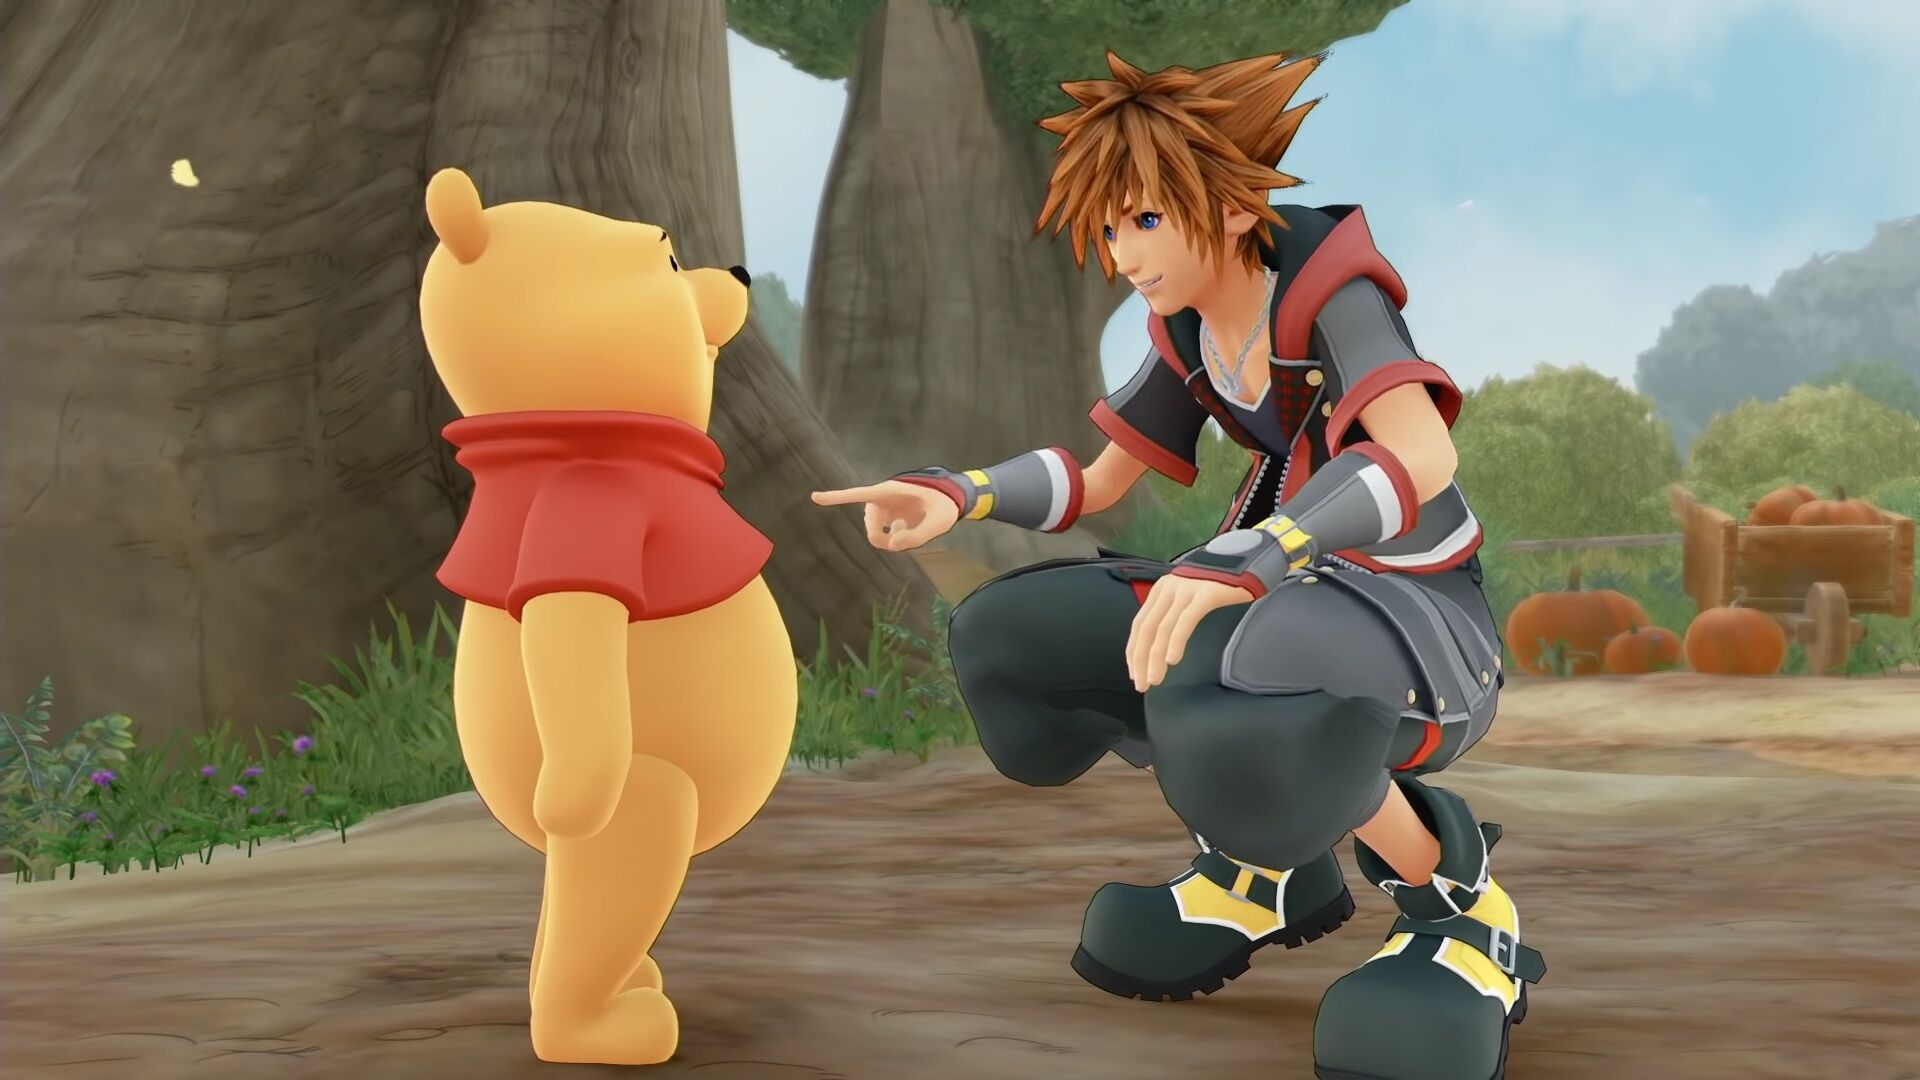 Oh bother! Winnie-the-Pooh gets his Kingdom Hearts 3 introduction